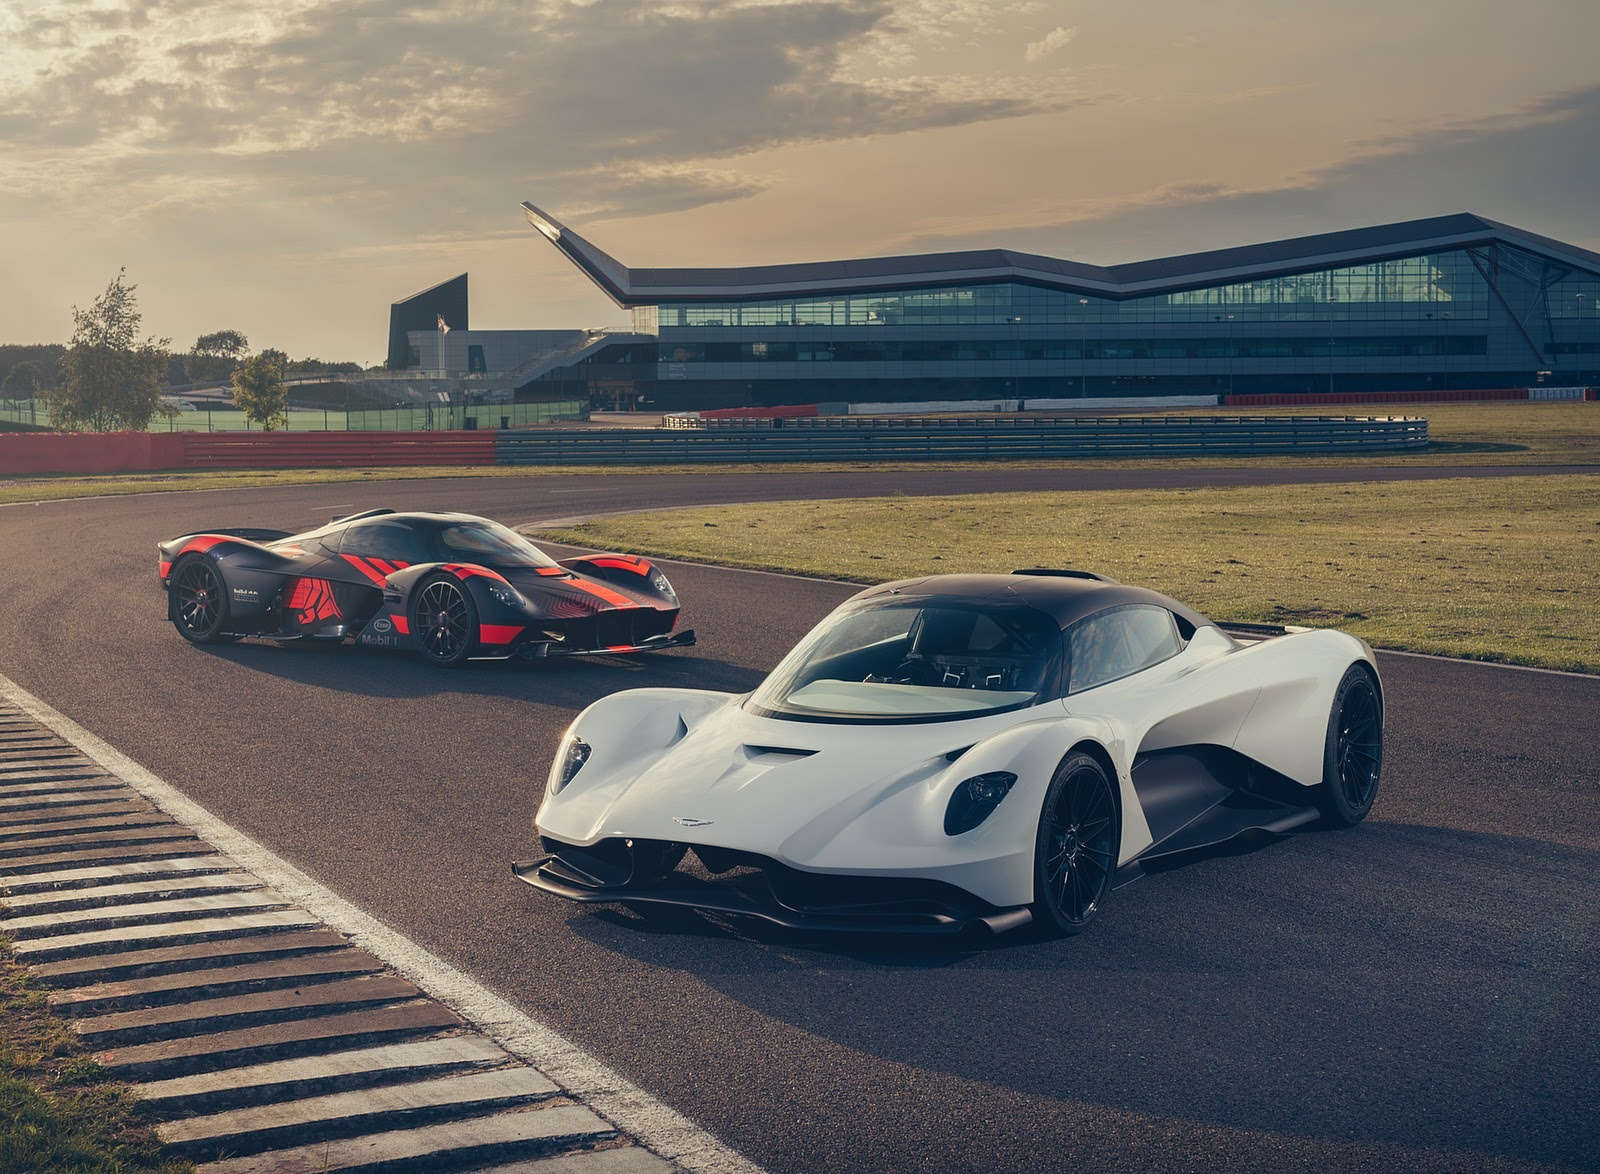 2020 Aston Martin Valhalla Wallpapers 7 Hd Images Newcarcars